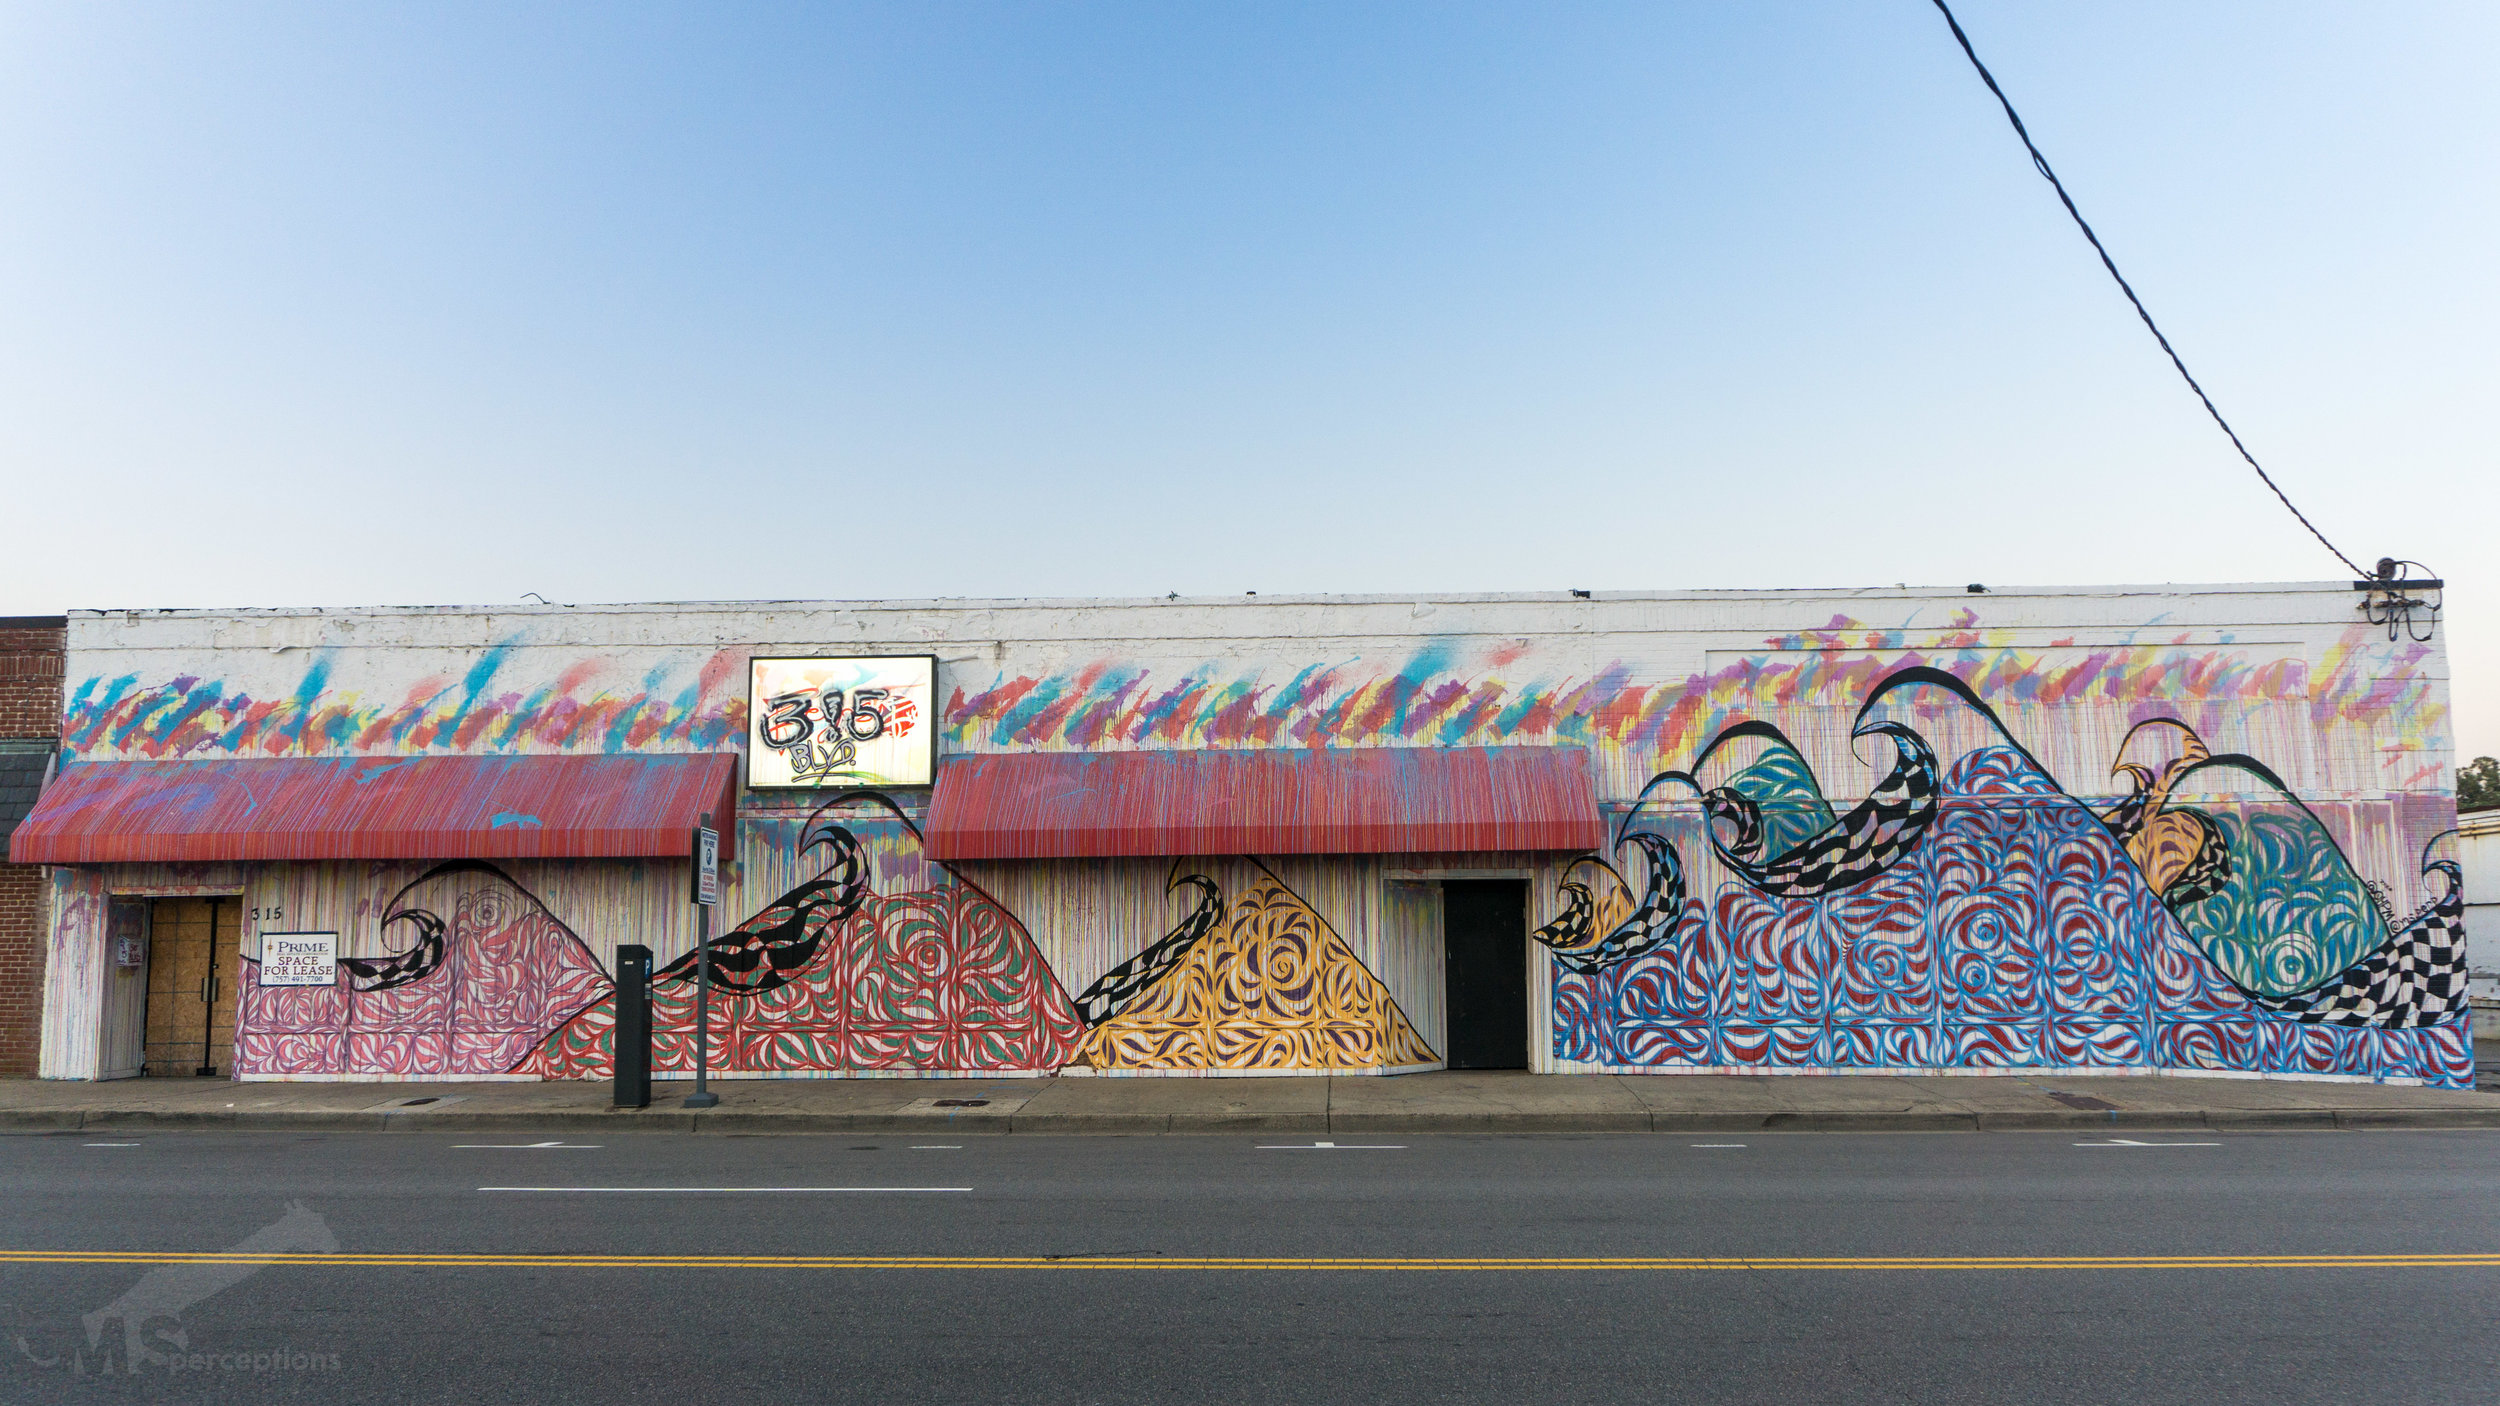 This mural by MS.perceptions and Parrish Majestic covers over 2,400 square feet on the front and side of 3!5 BLVD.